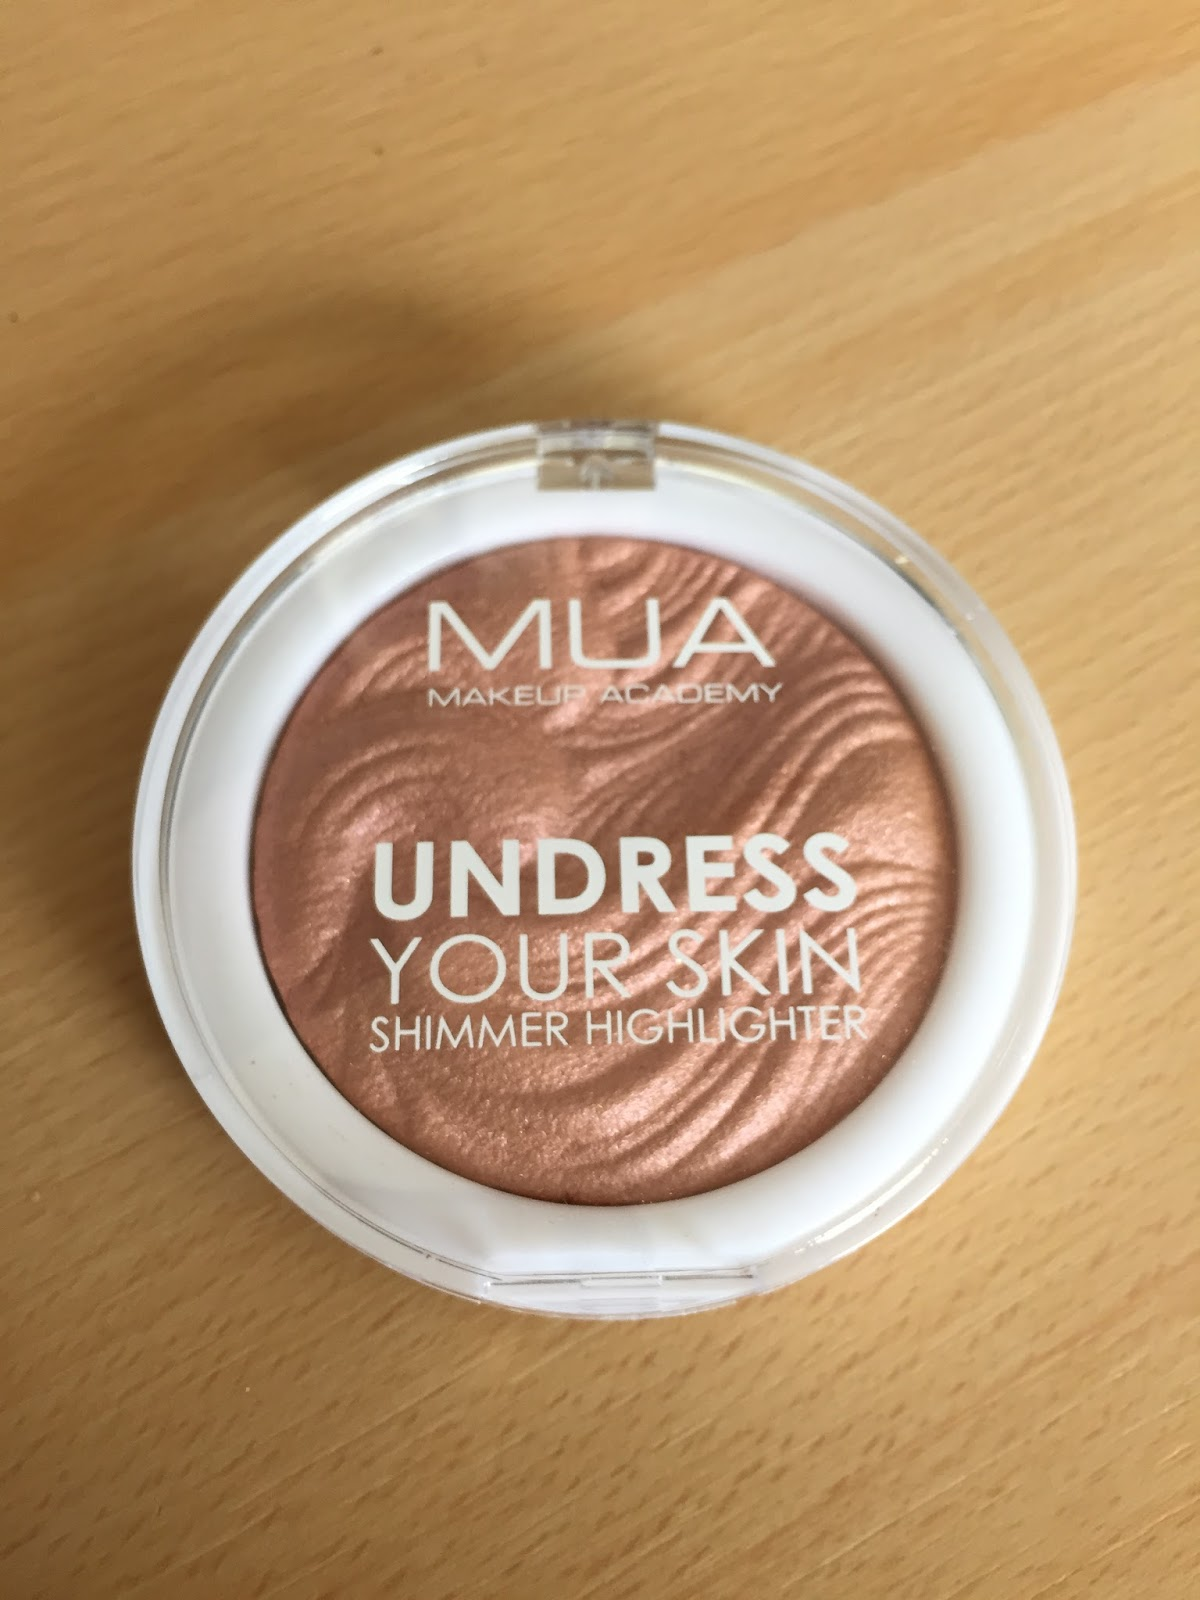 Review Mua Professional Eye Primer: Anne-Wil Kraan: Review MUA Undress Your Skin Shimmer